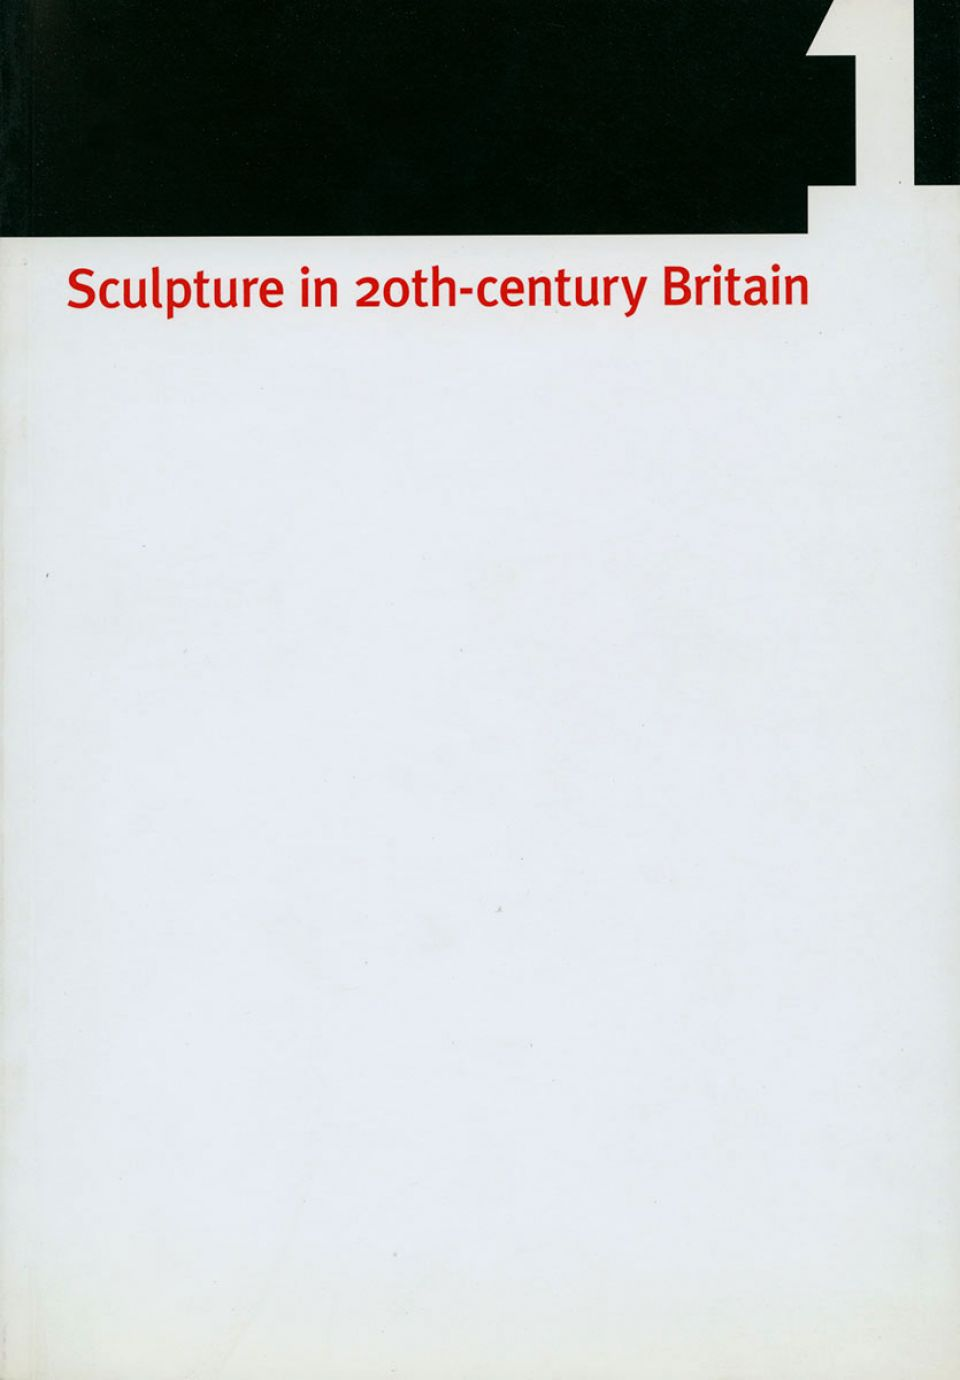 Sculpture in 20th-century Britain: Volume 1 cover